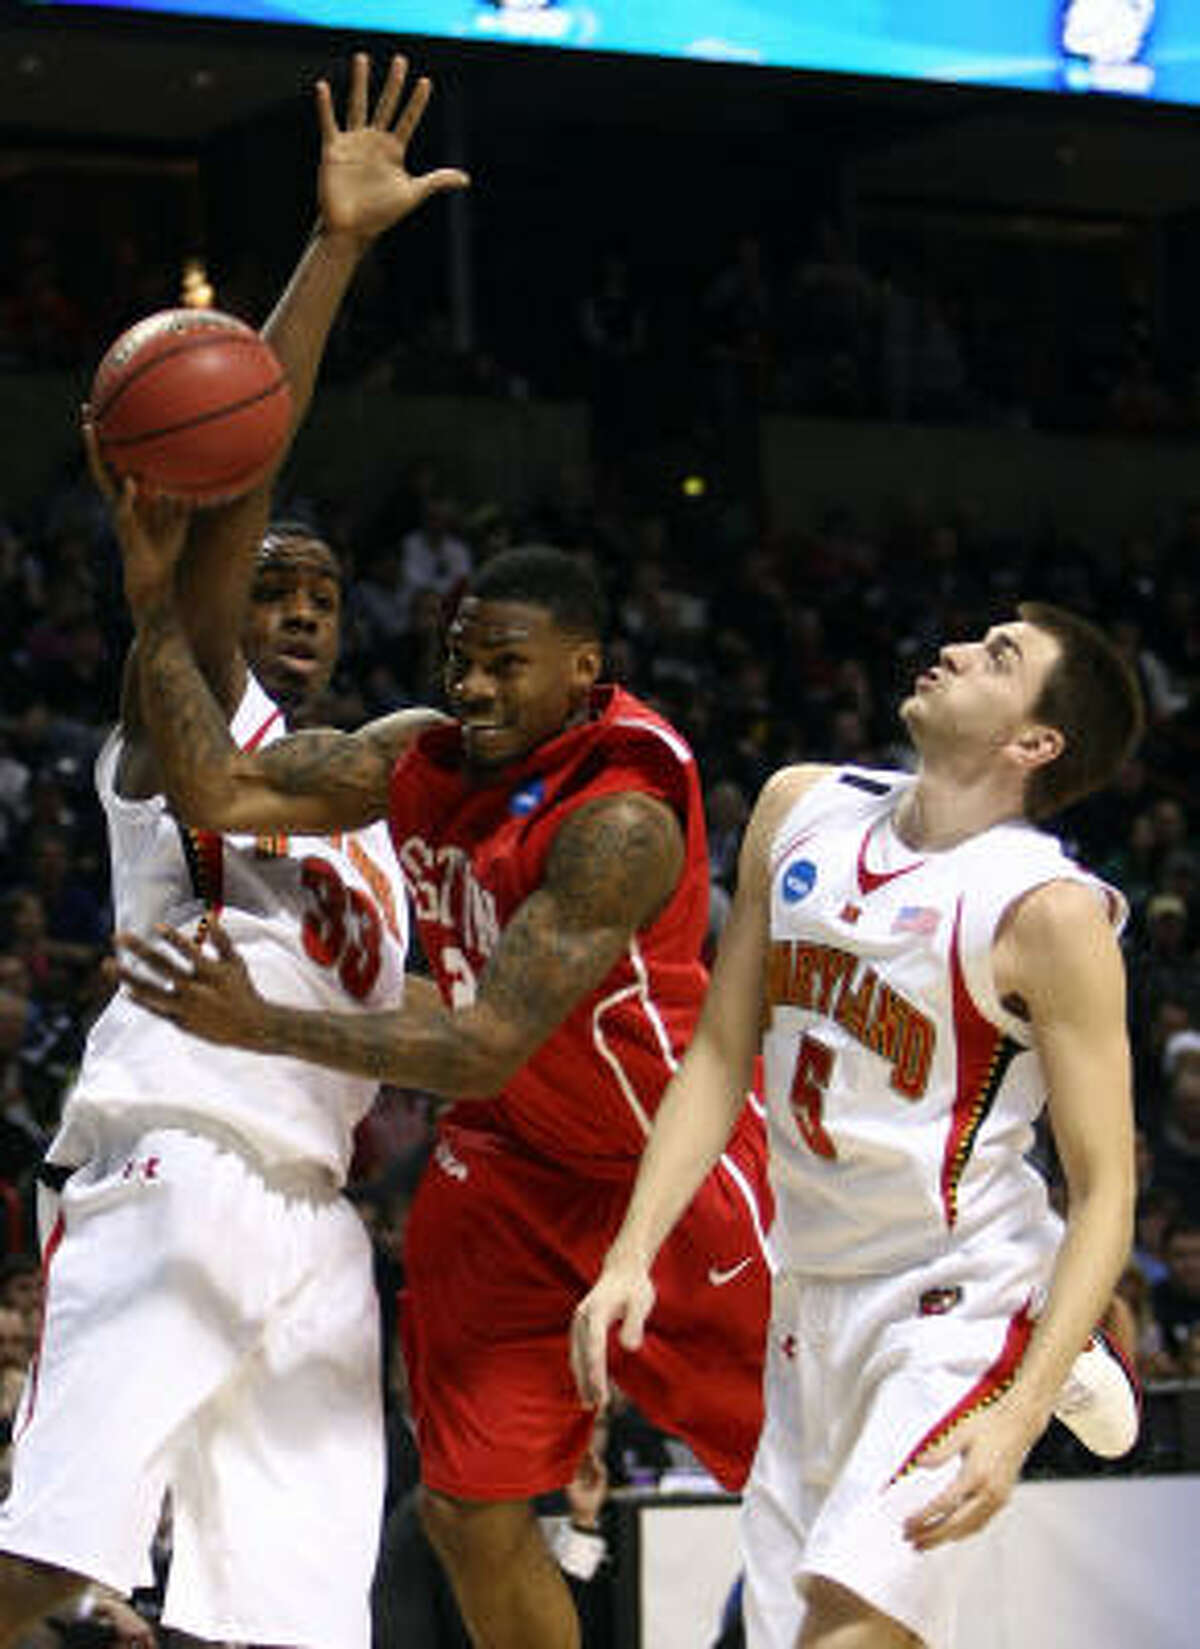 UH guard Aubrey Coleman, center, finished with 26 points and nine rebounds. He entered the game as the nation's leading scorer.